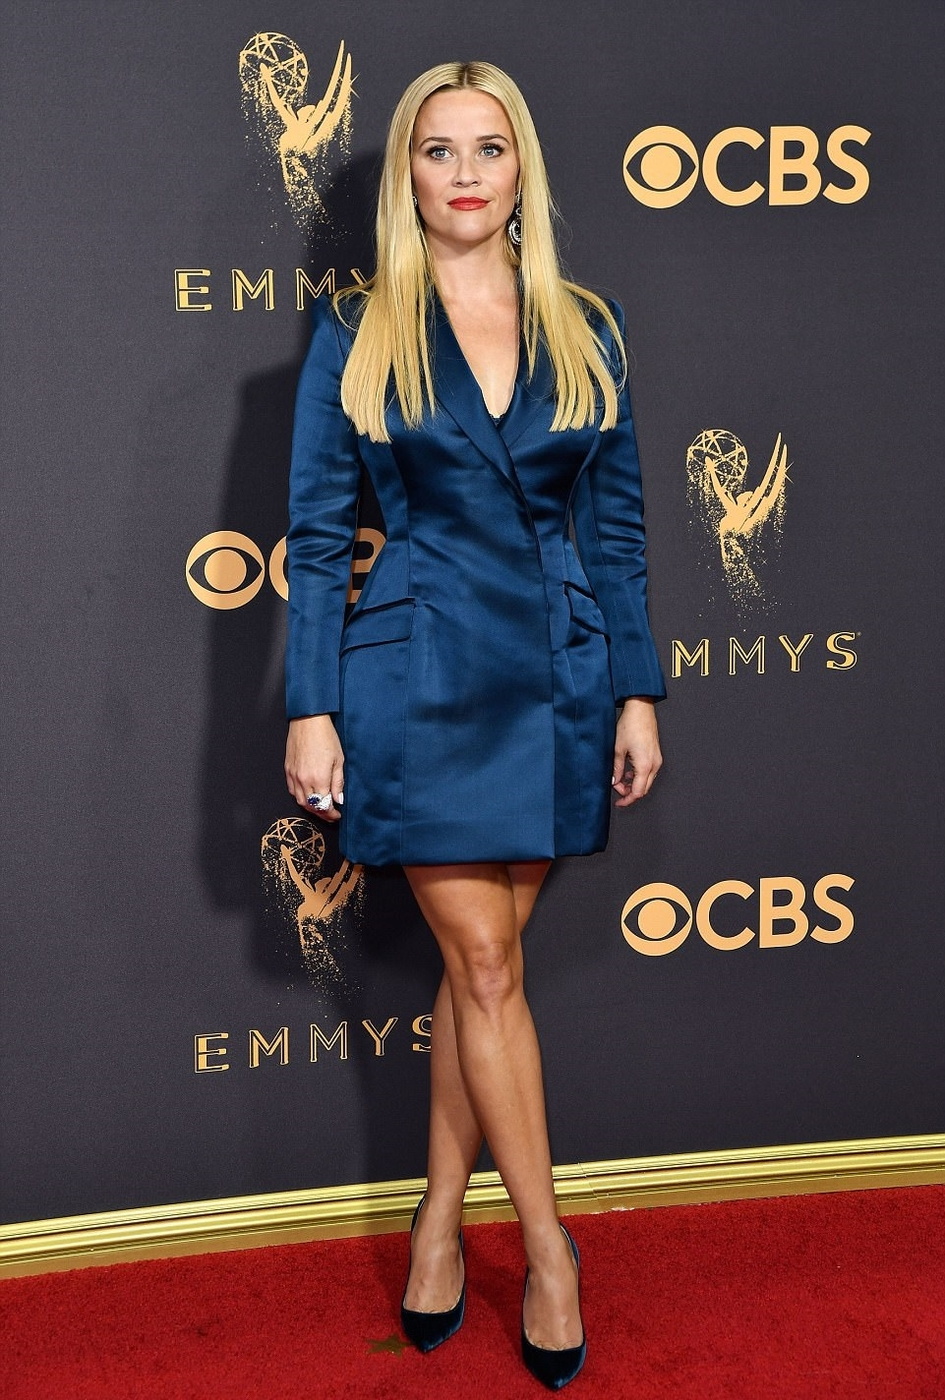 Emmys 2017 Reese Witherspoon Red Carpet.jpg